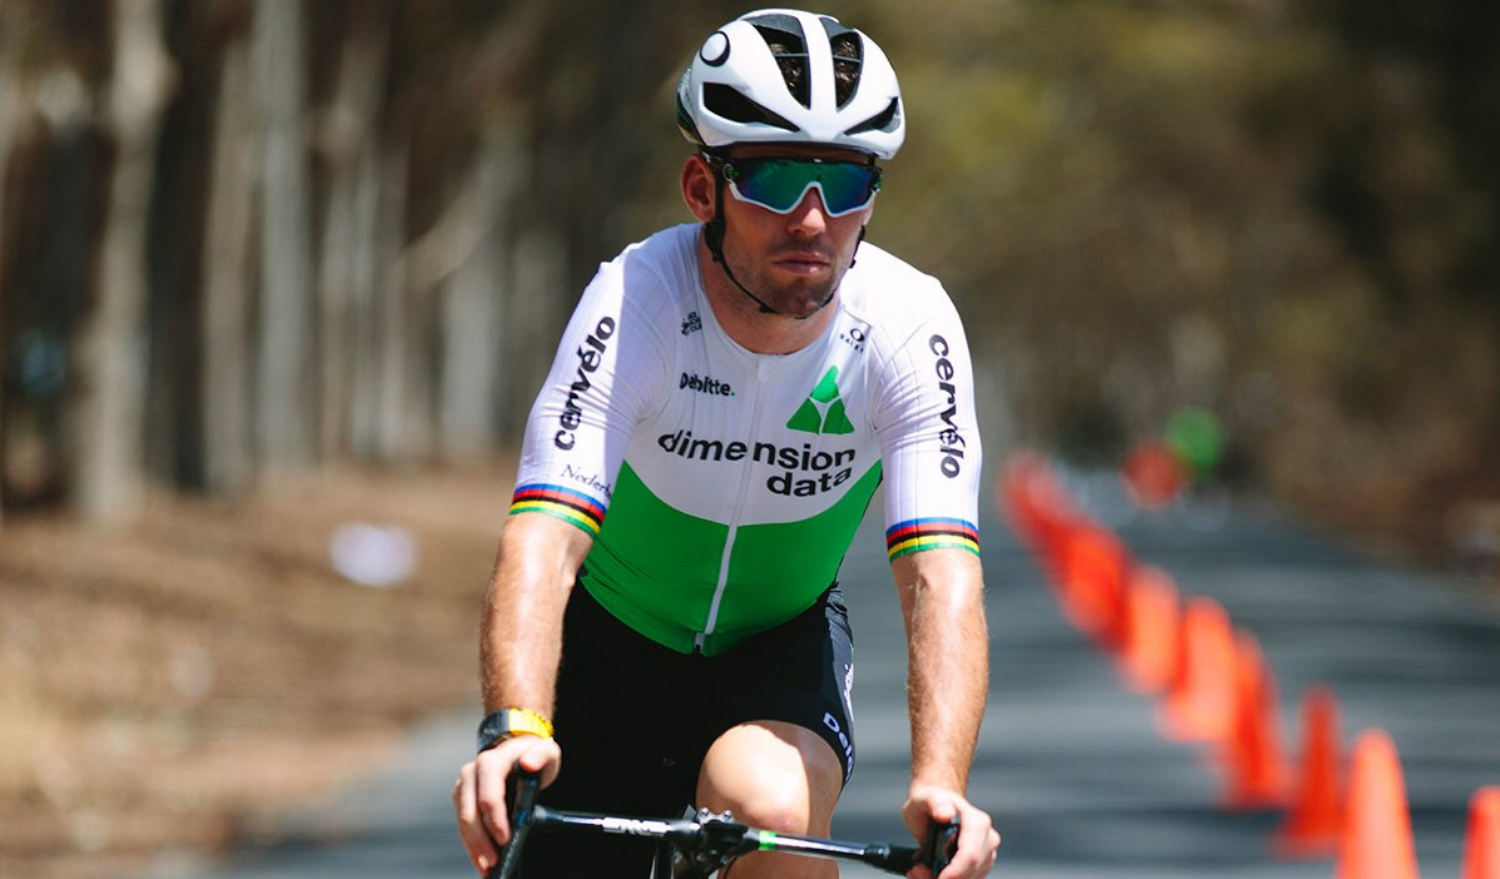 39125d277b6 Mark Cavendish Wearing Oakley Jawbreaker Sunglasses - Sunglasses and Style  Blog - ShadesDaddy.com